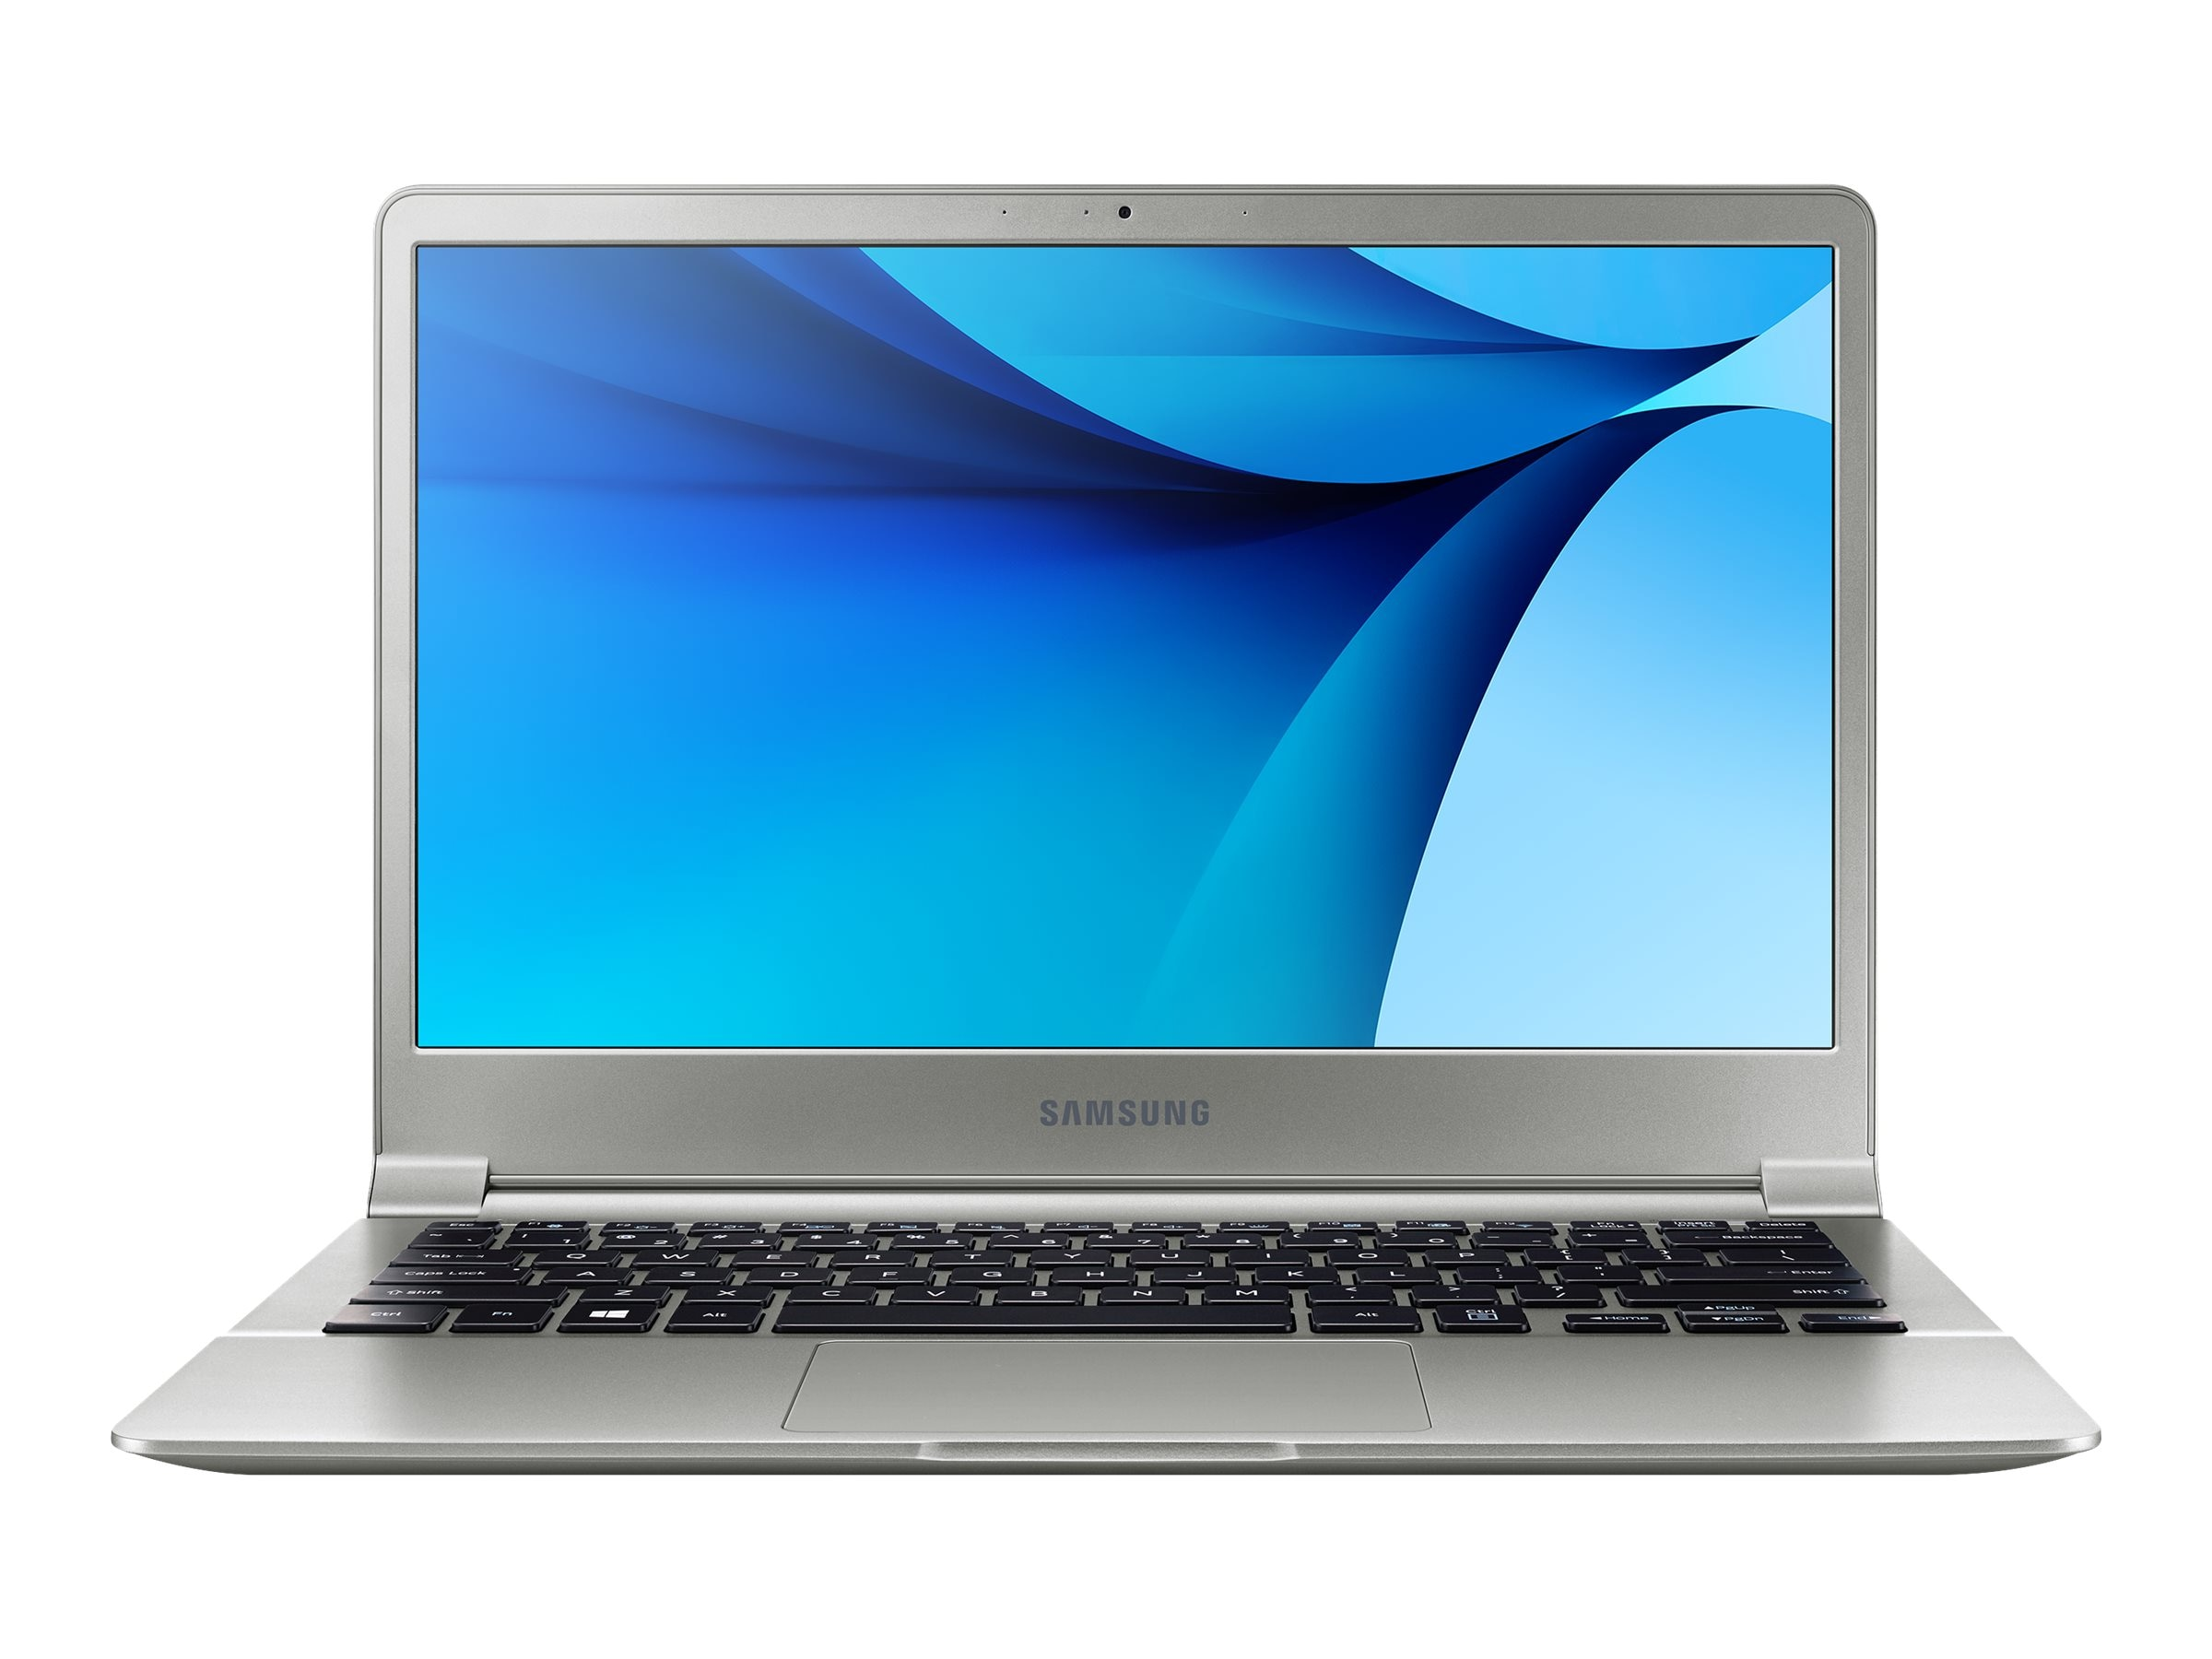 Samsung Notebook PC Core i5-6200U 8GB 128GB 13.3, NP900X3L-K03US, 31391745, Notebooks